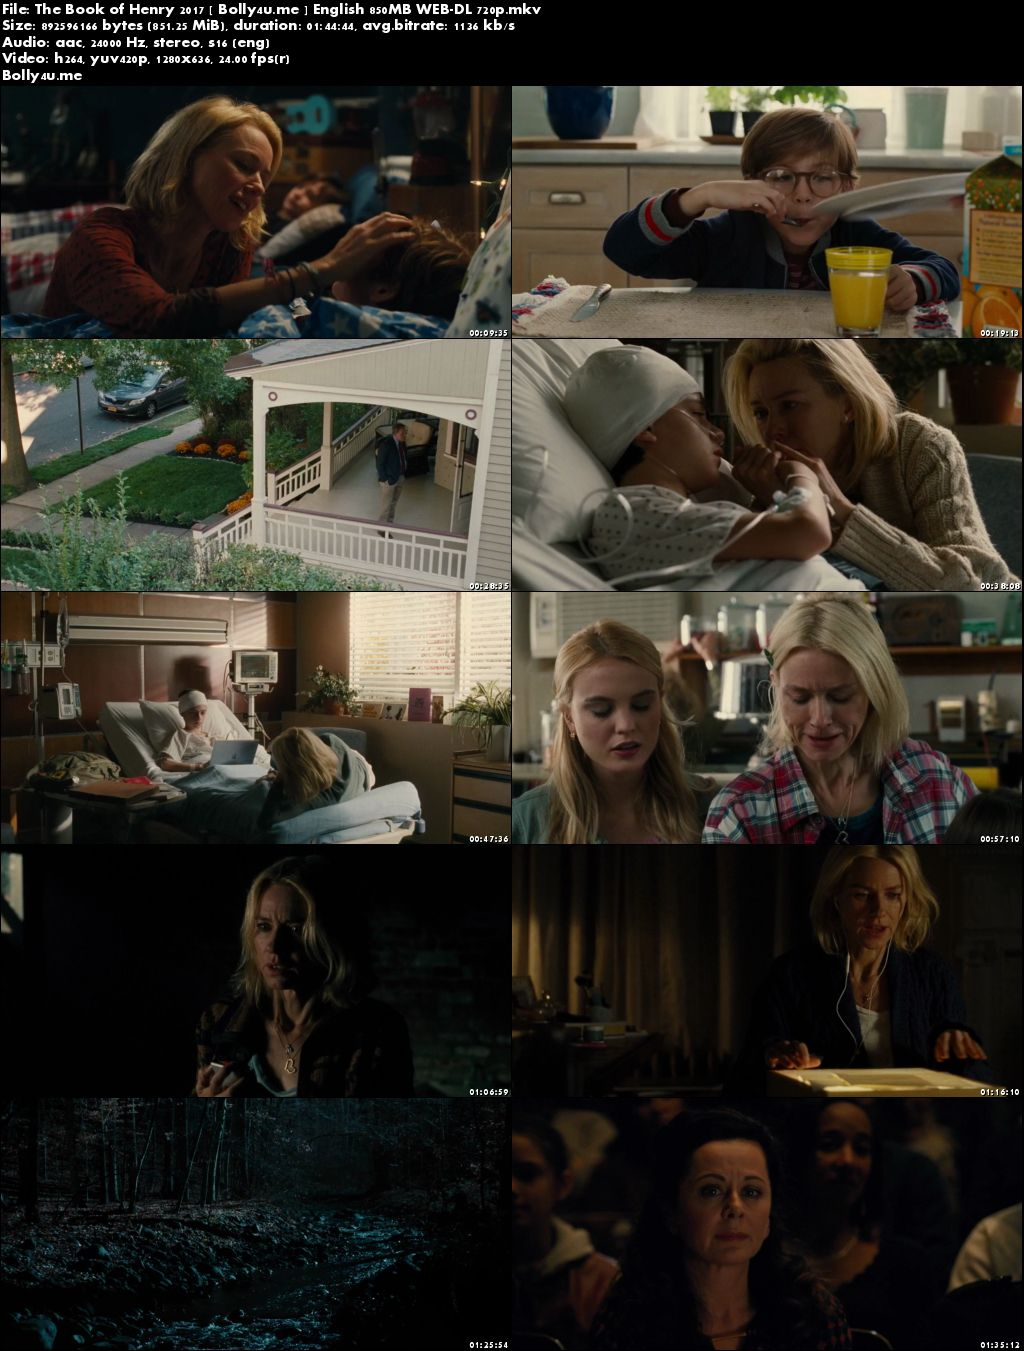 The Book of Henry 2017 WEB-DL 850MB English 720p